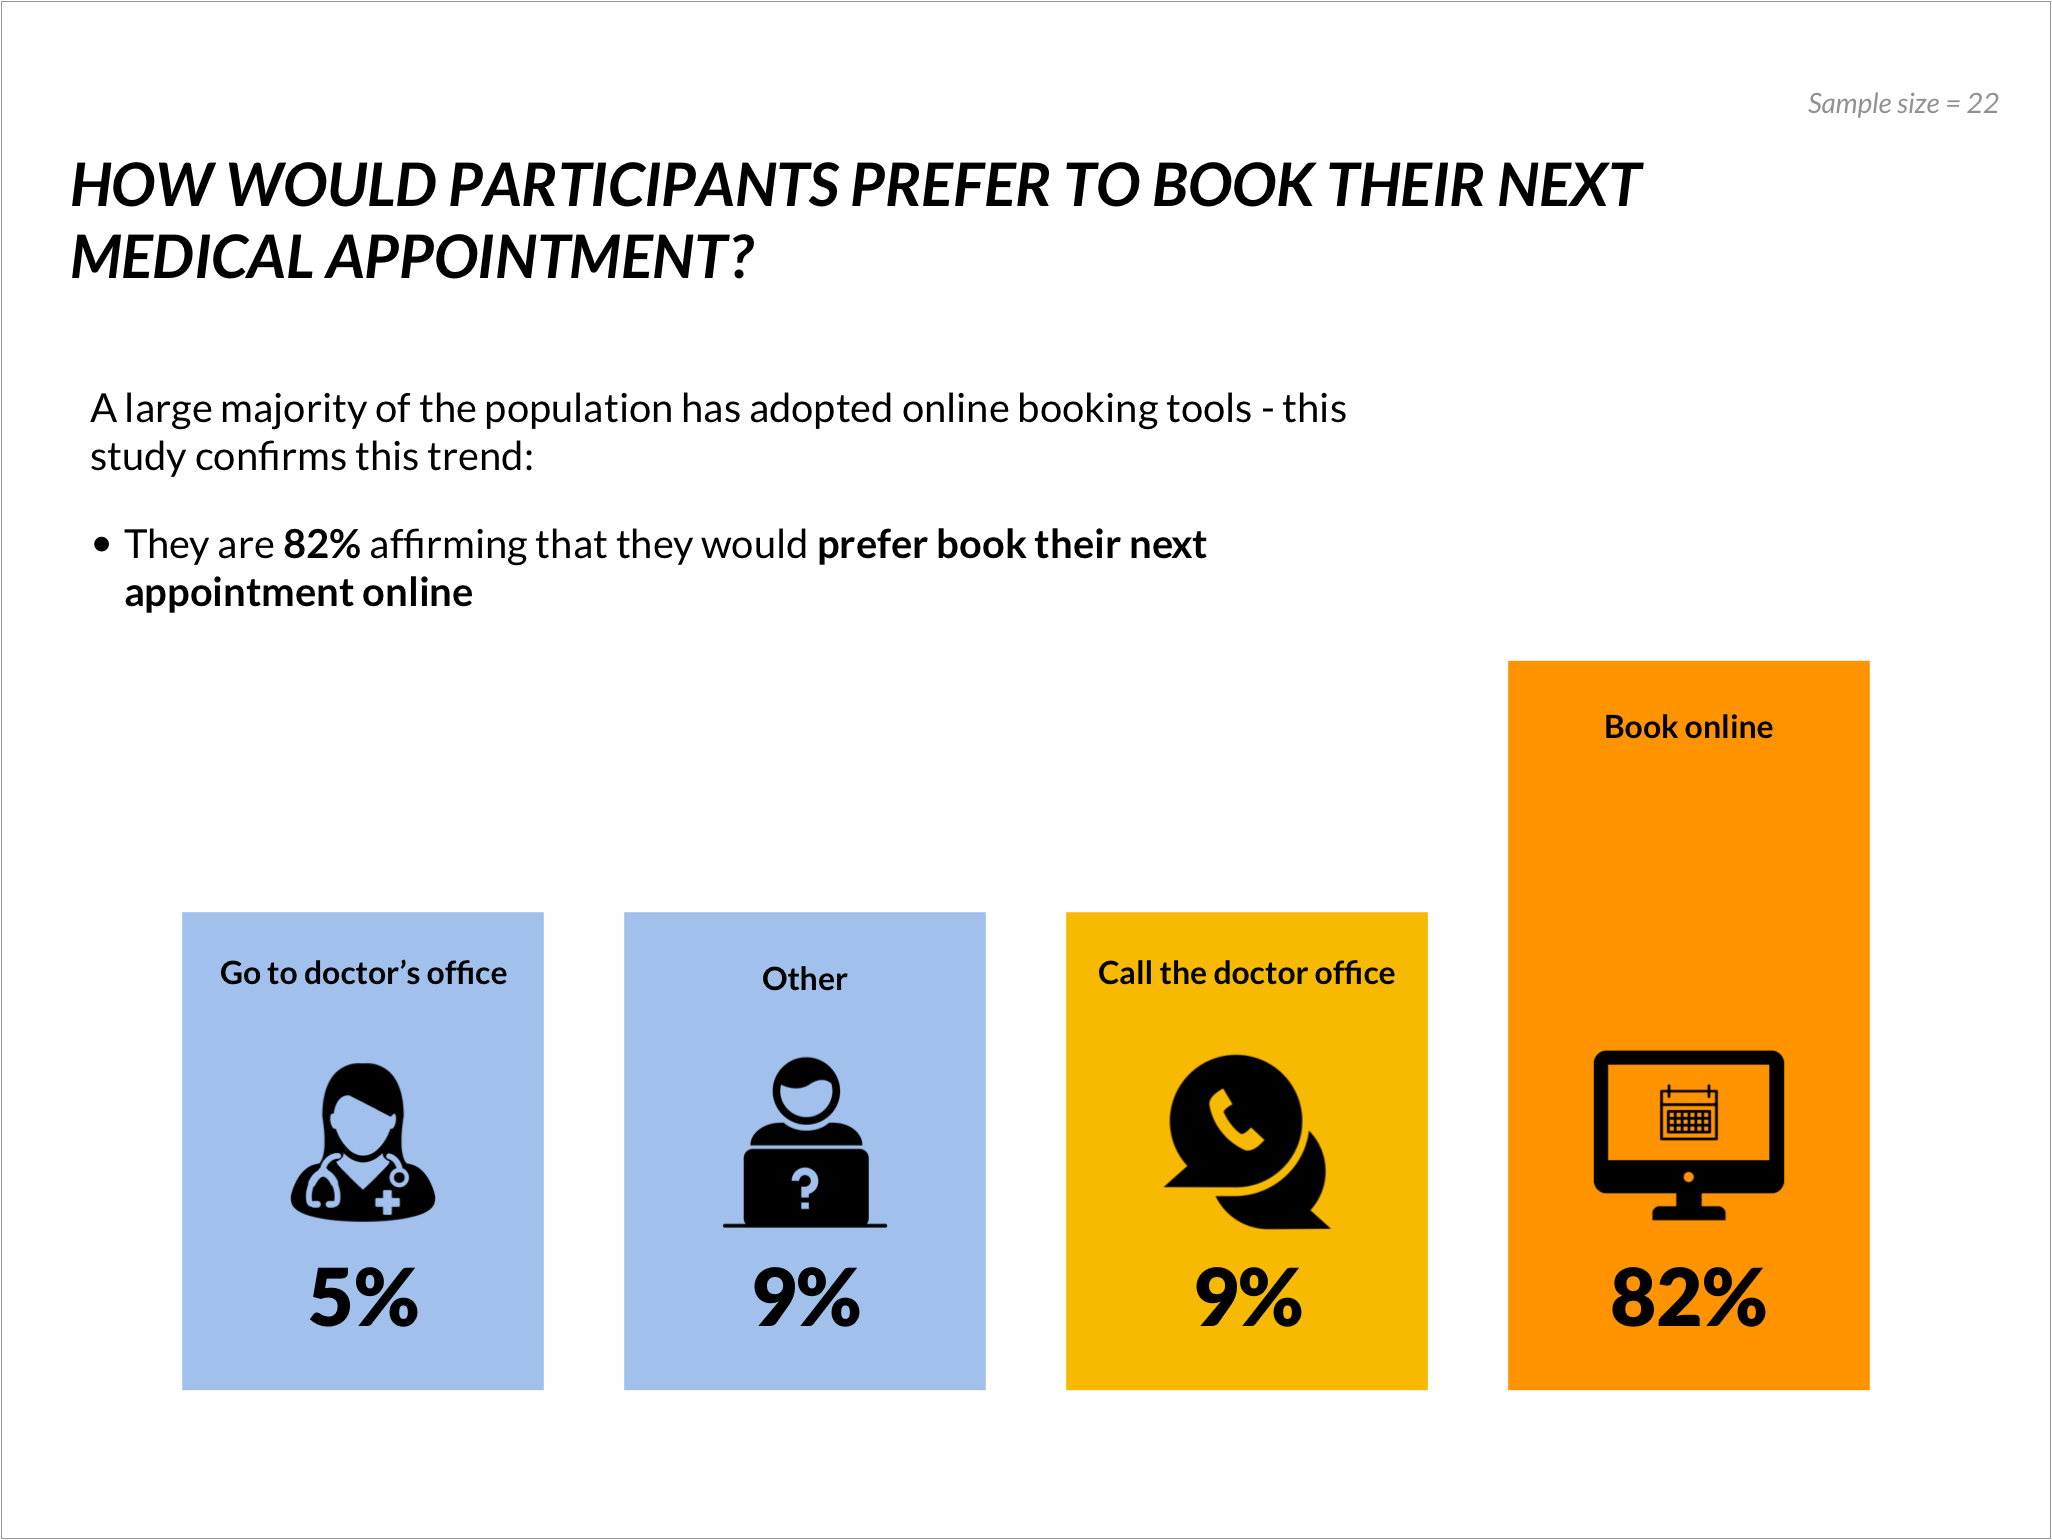 82% of the participants book online their doctor appointment